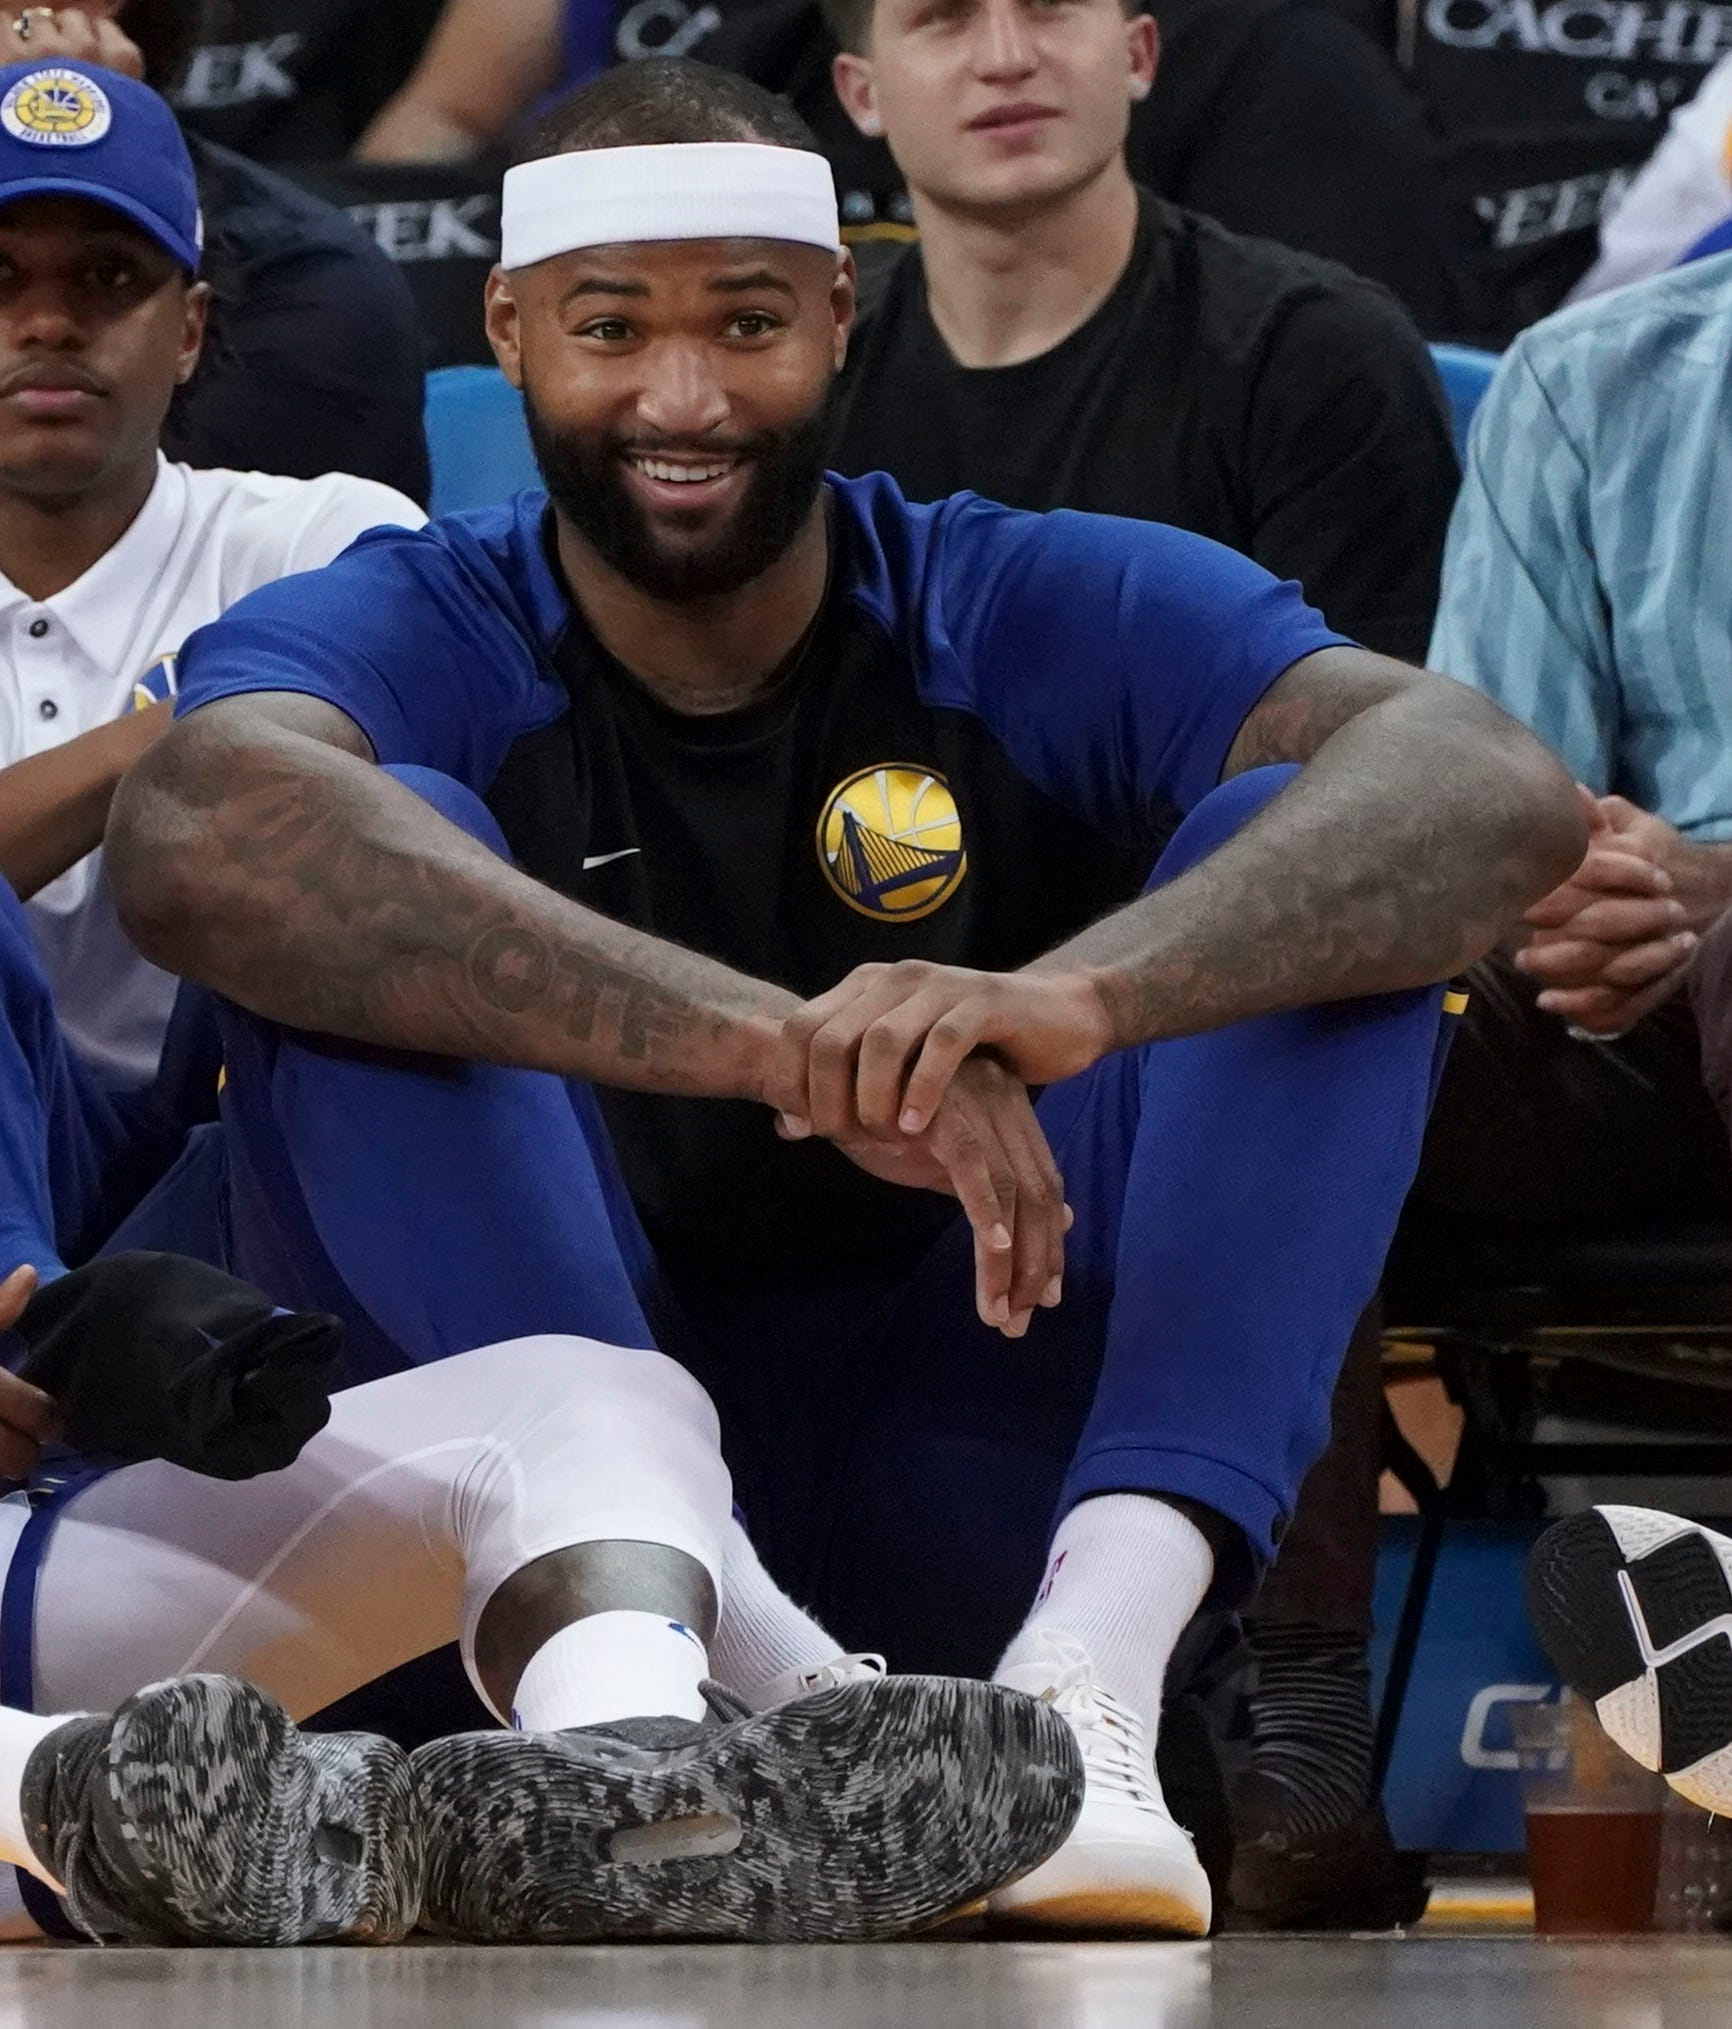 Warriors forward center DeMarcus Cousins is set to return from injury and make his official debut for Golden State on Friday.